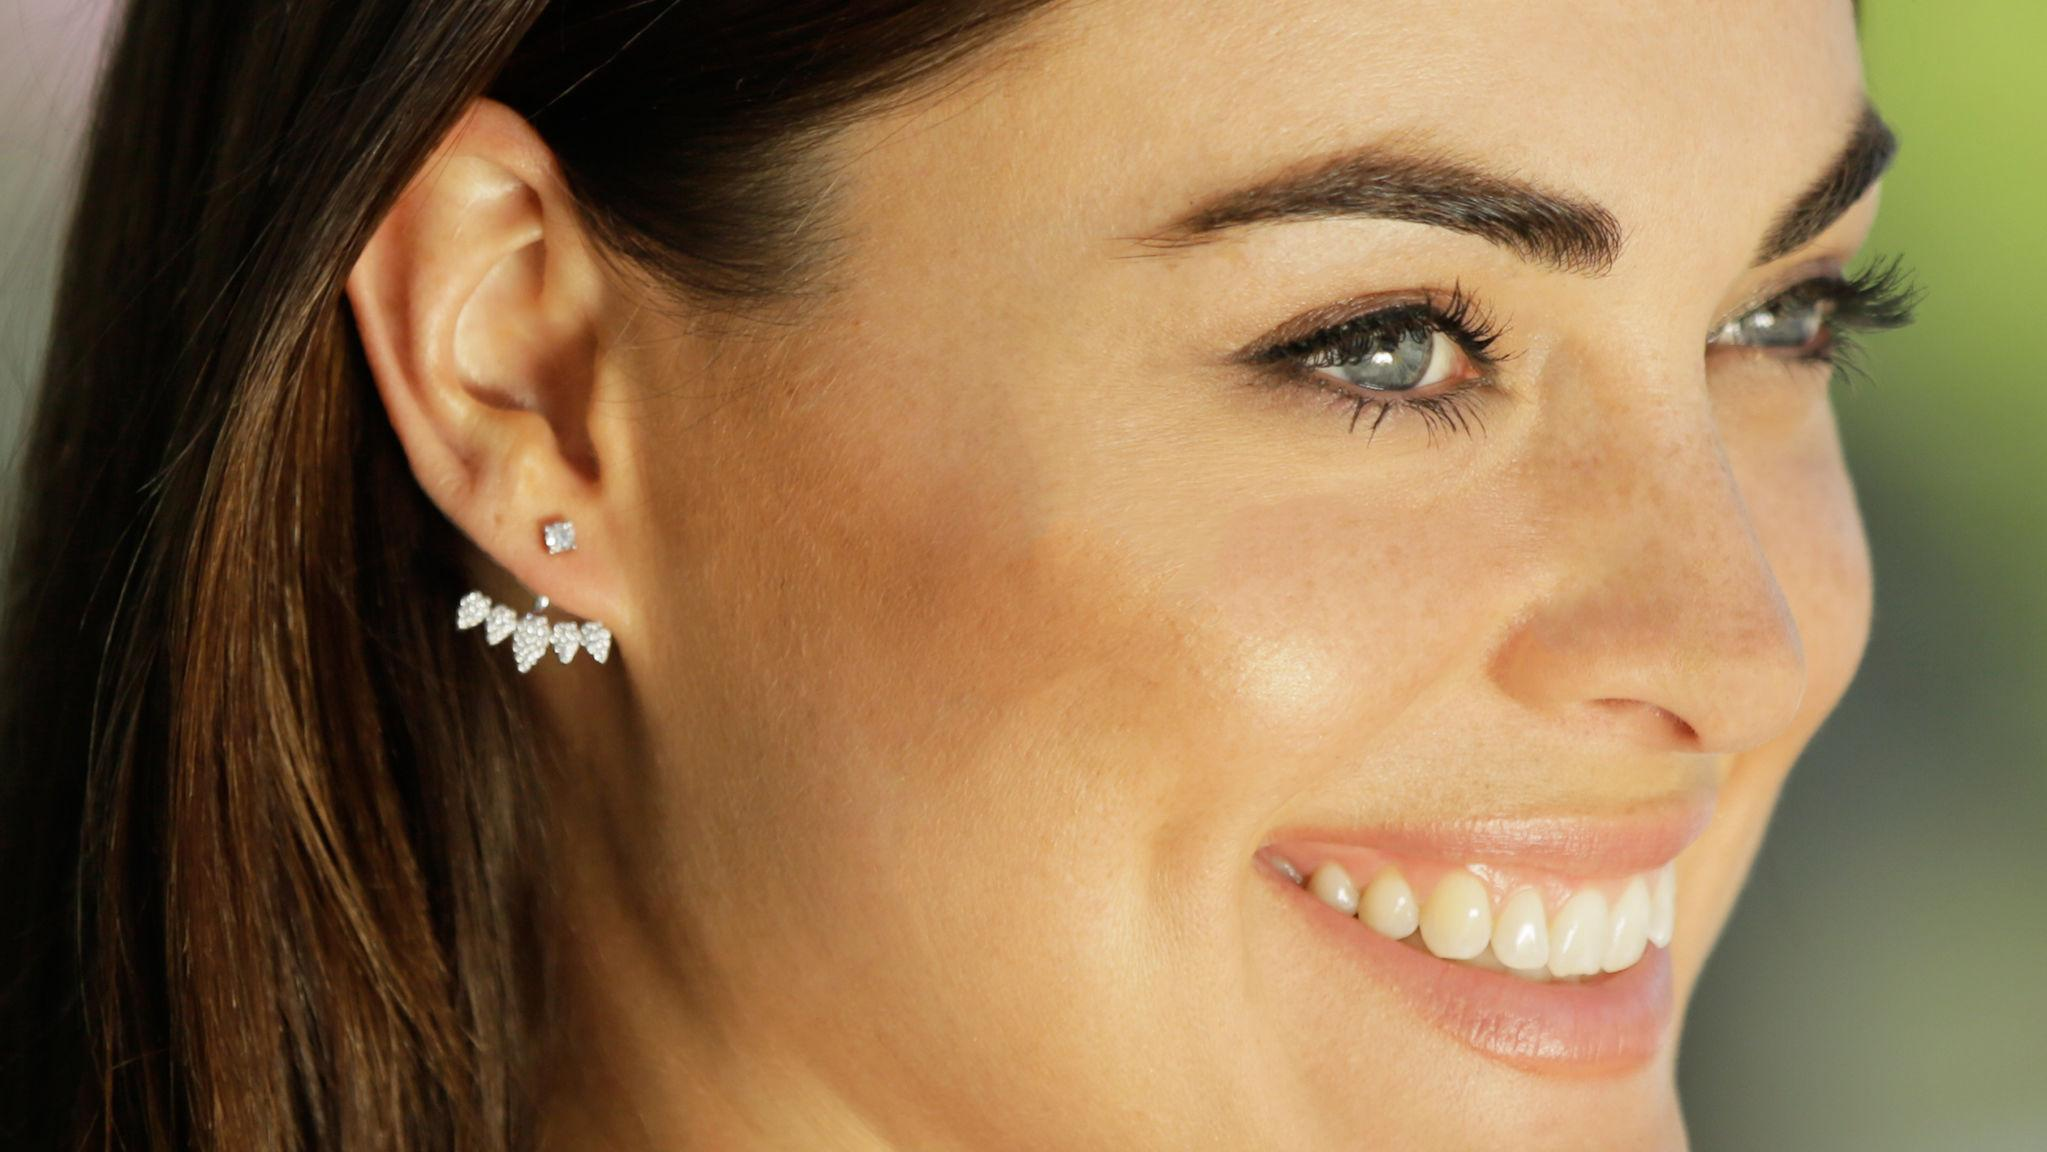 Ear Suspenders Are The New, Subtle Celeb Earring Trend